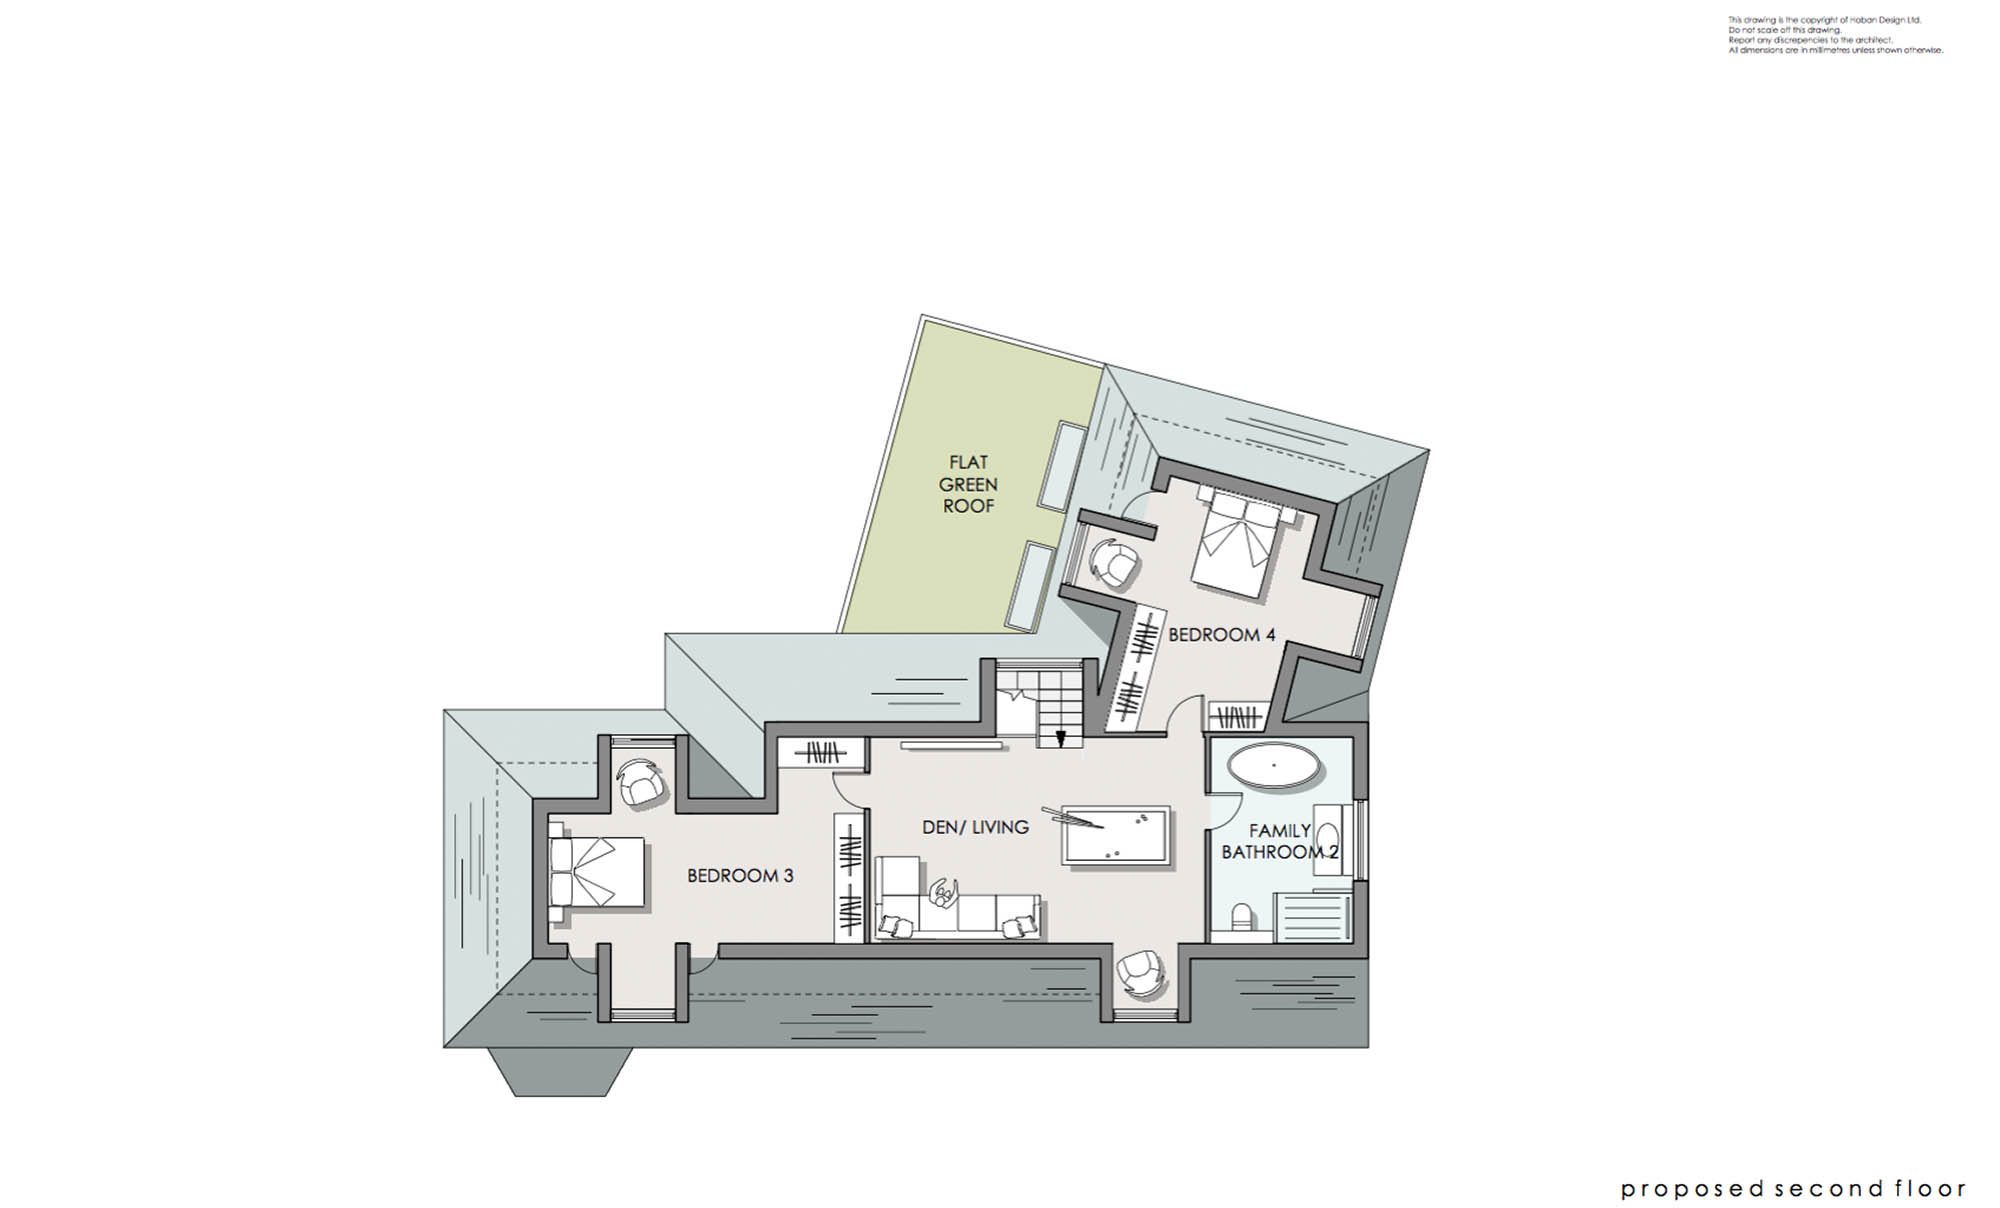 Second floor plan for Kingston renovation with extra bedrooms, den/living area and second family bathroom